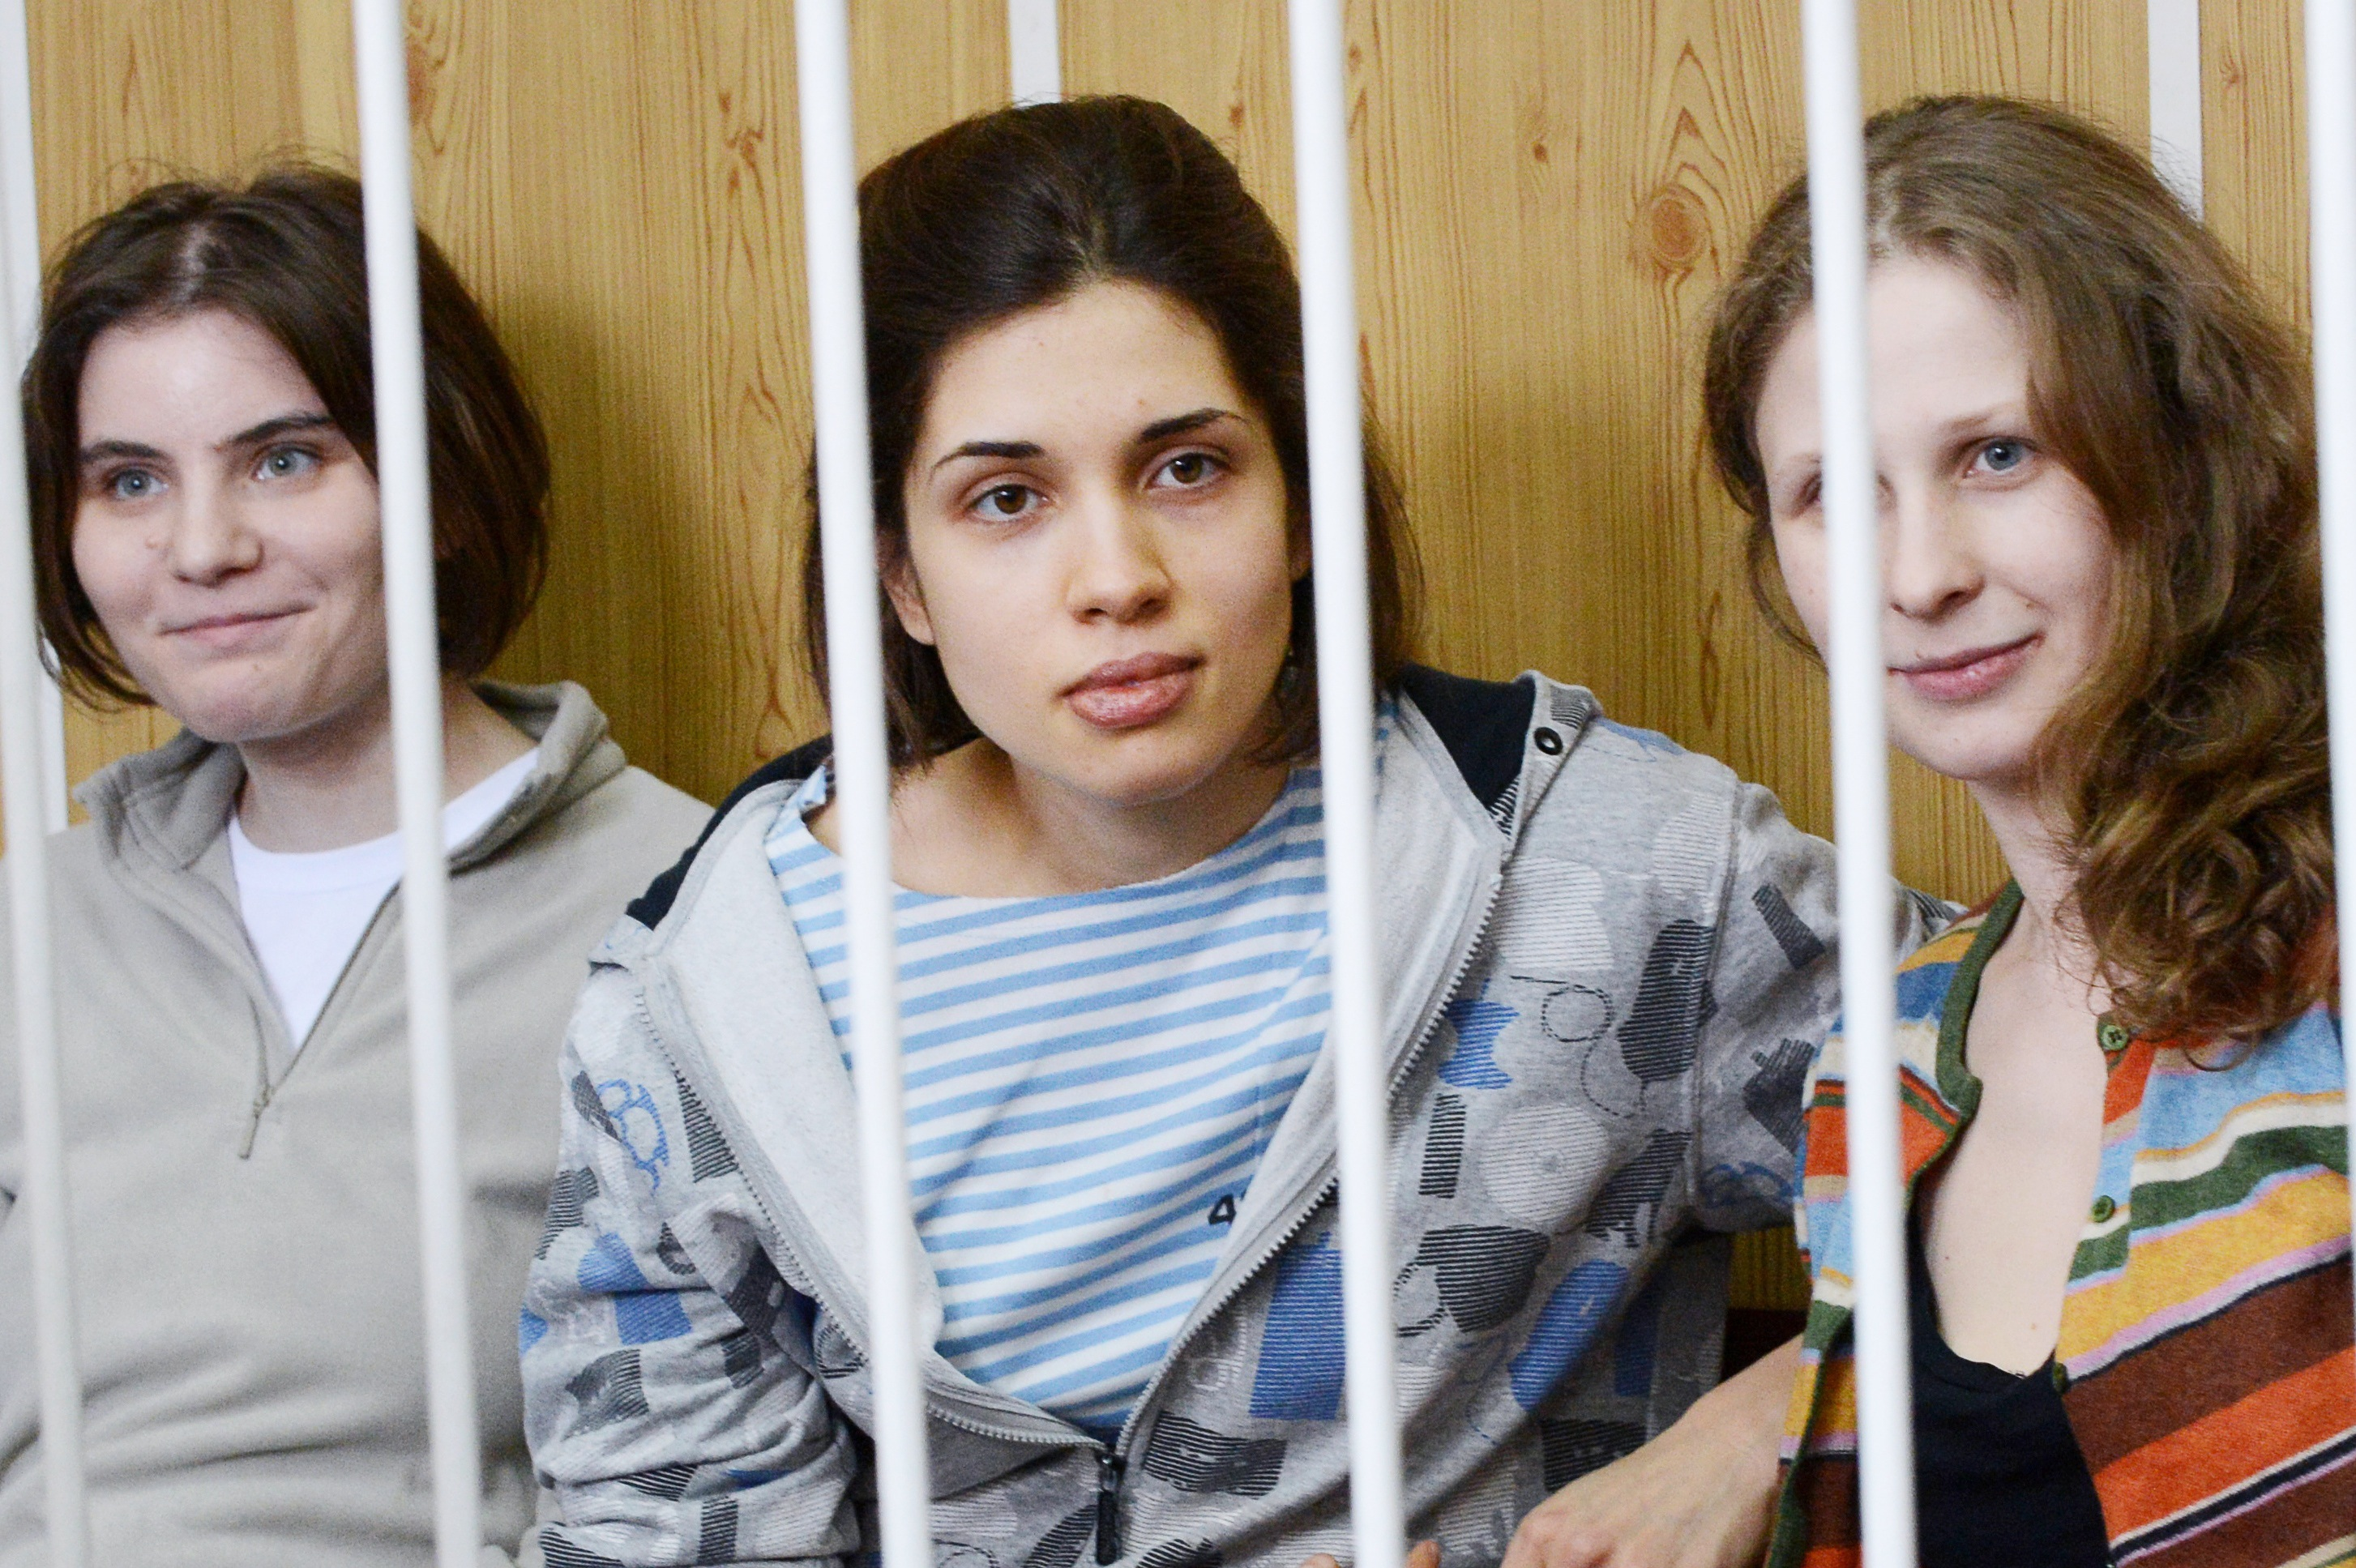 Katia, Nadia, and Masha, three members of Pussy Riot, during their 2013 trial for hooliganism